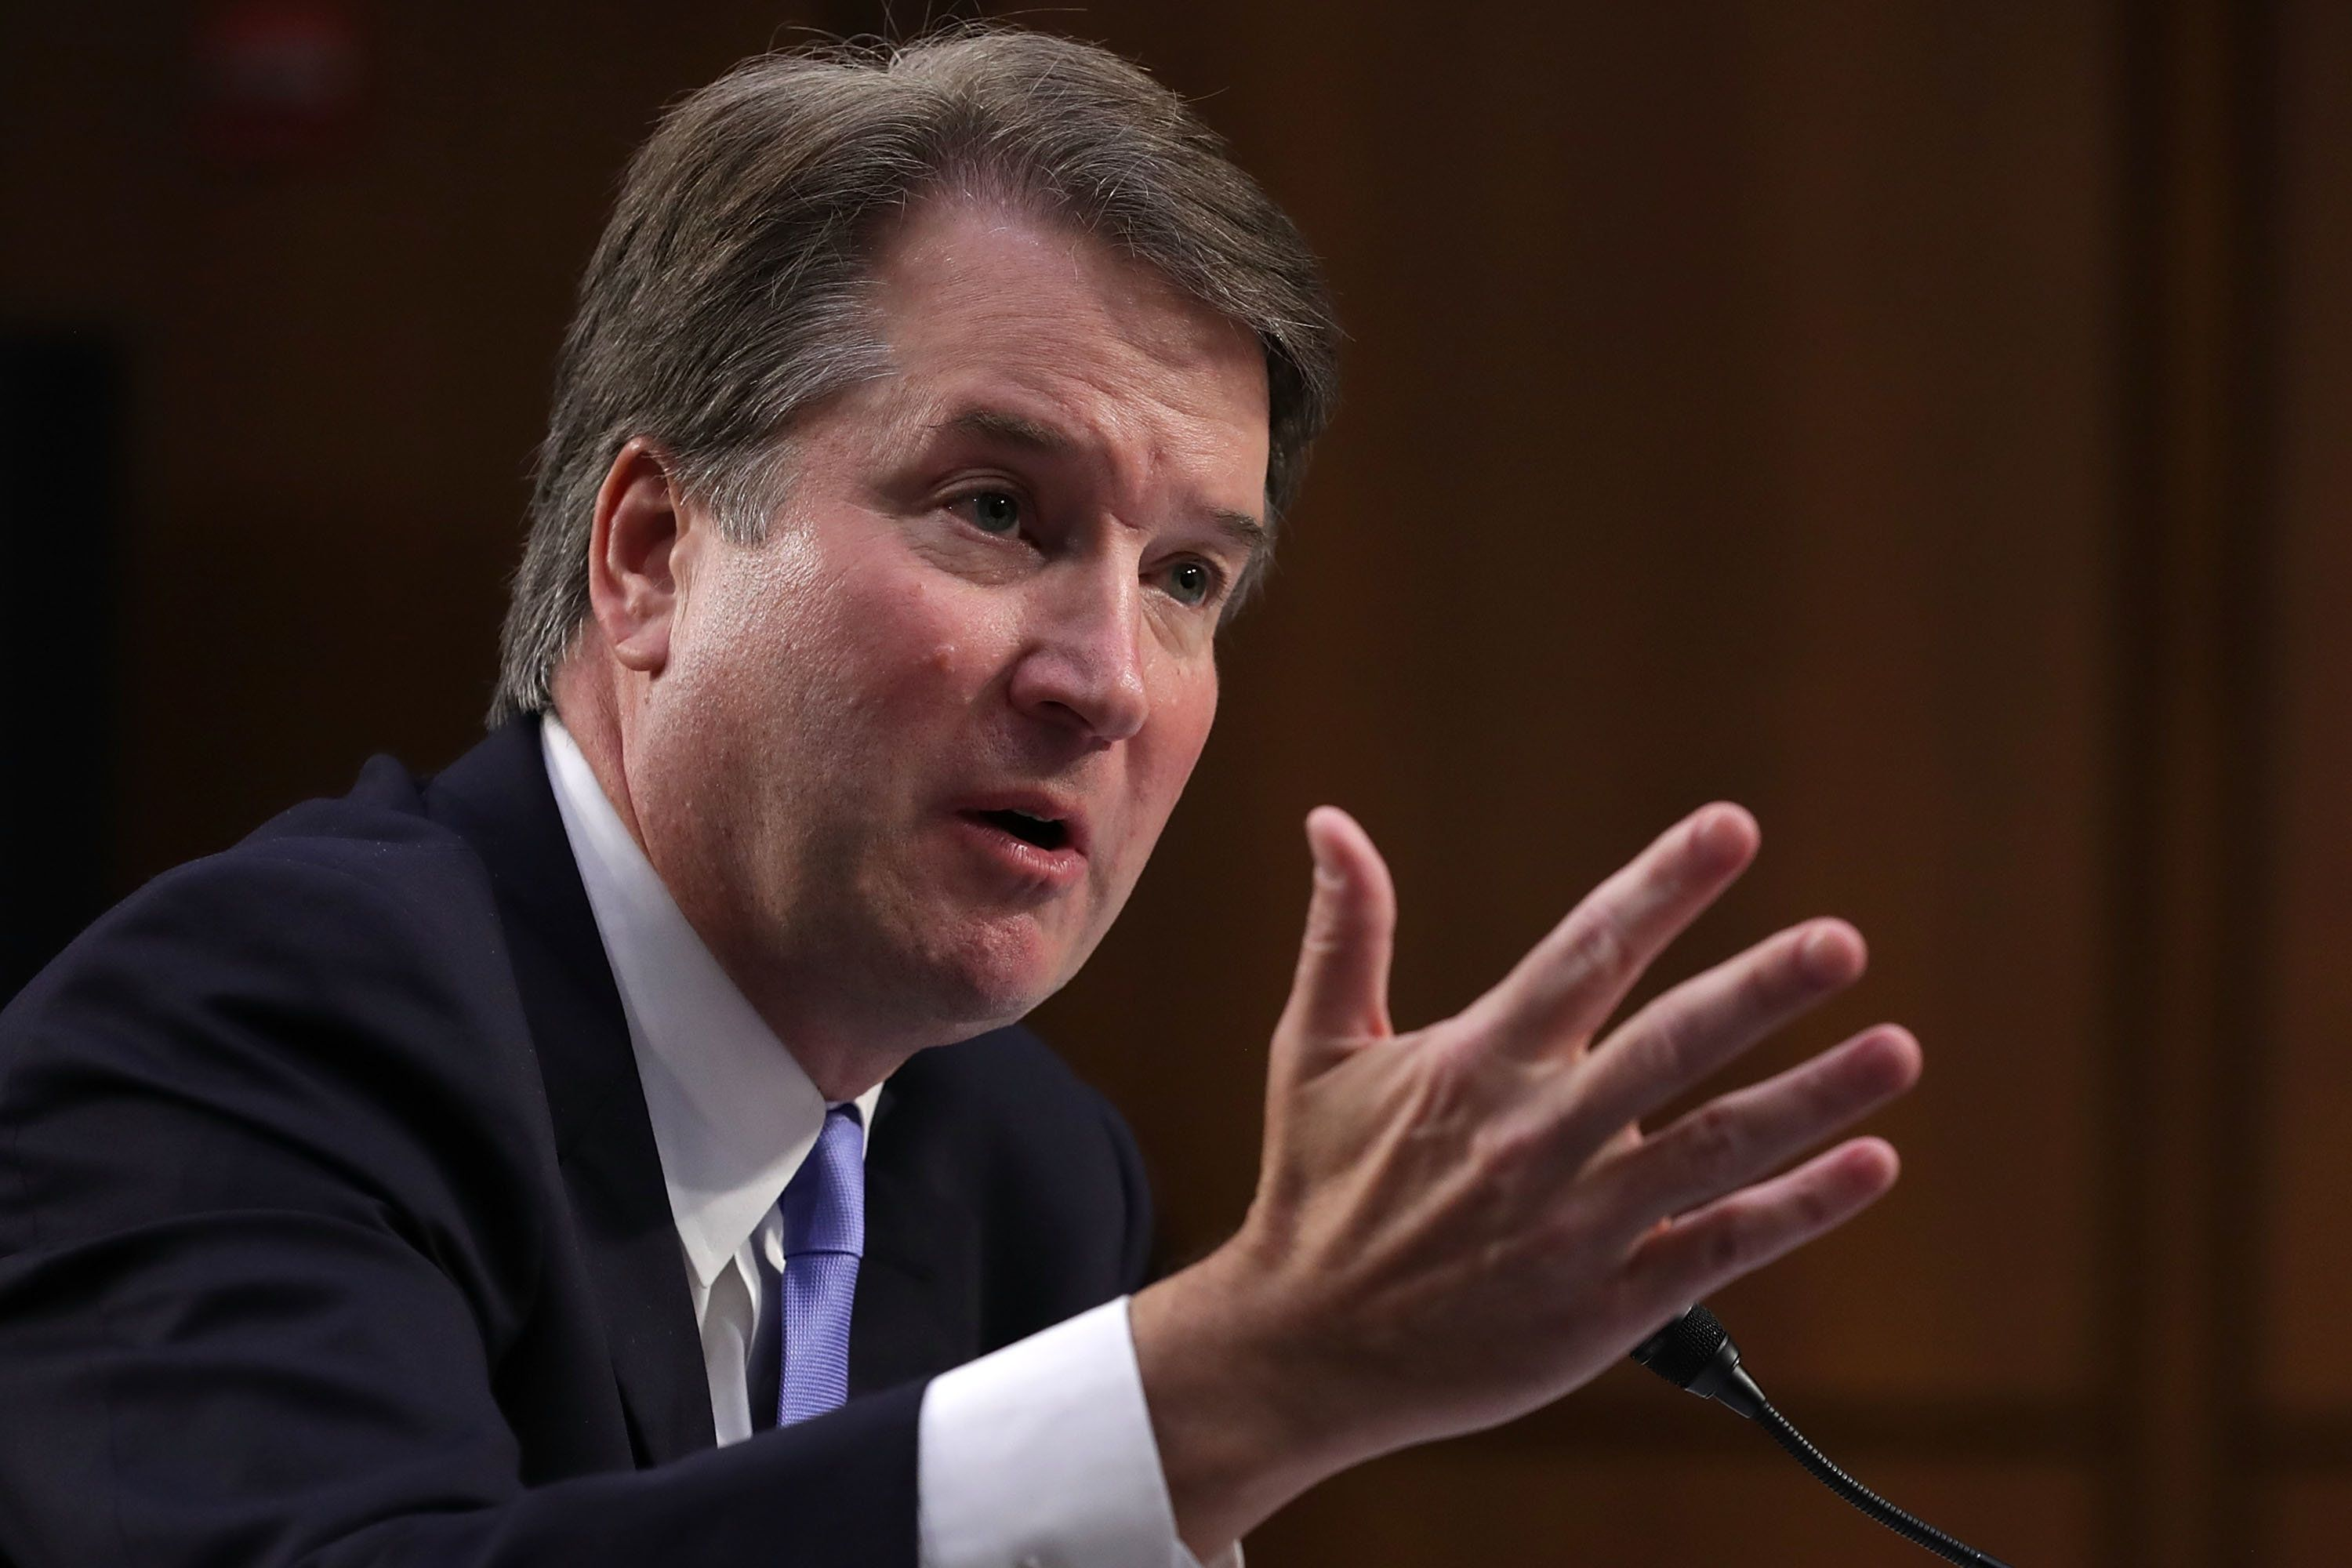 Supreme Court nominee Brett Kavanaugh appeared to refer to contraceptives as